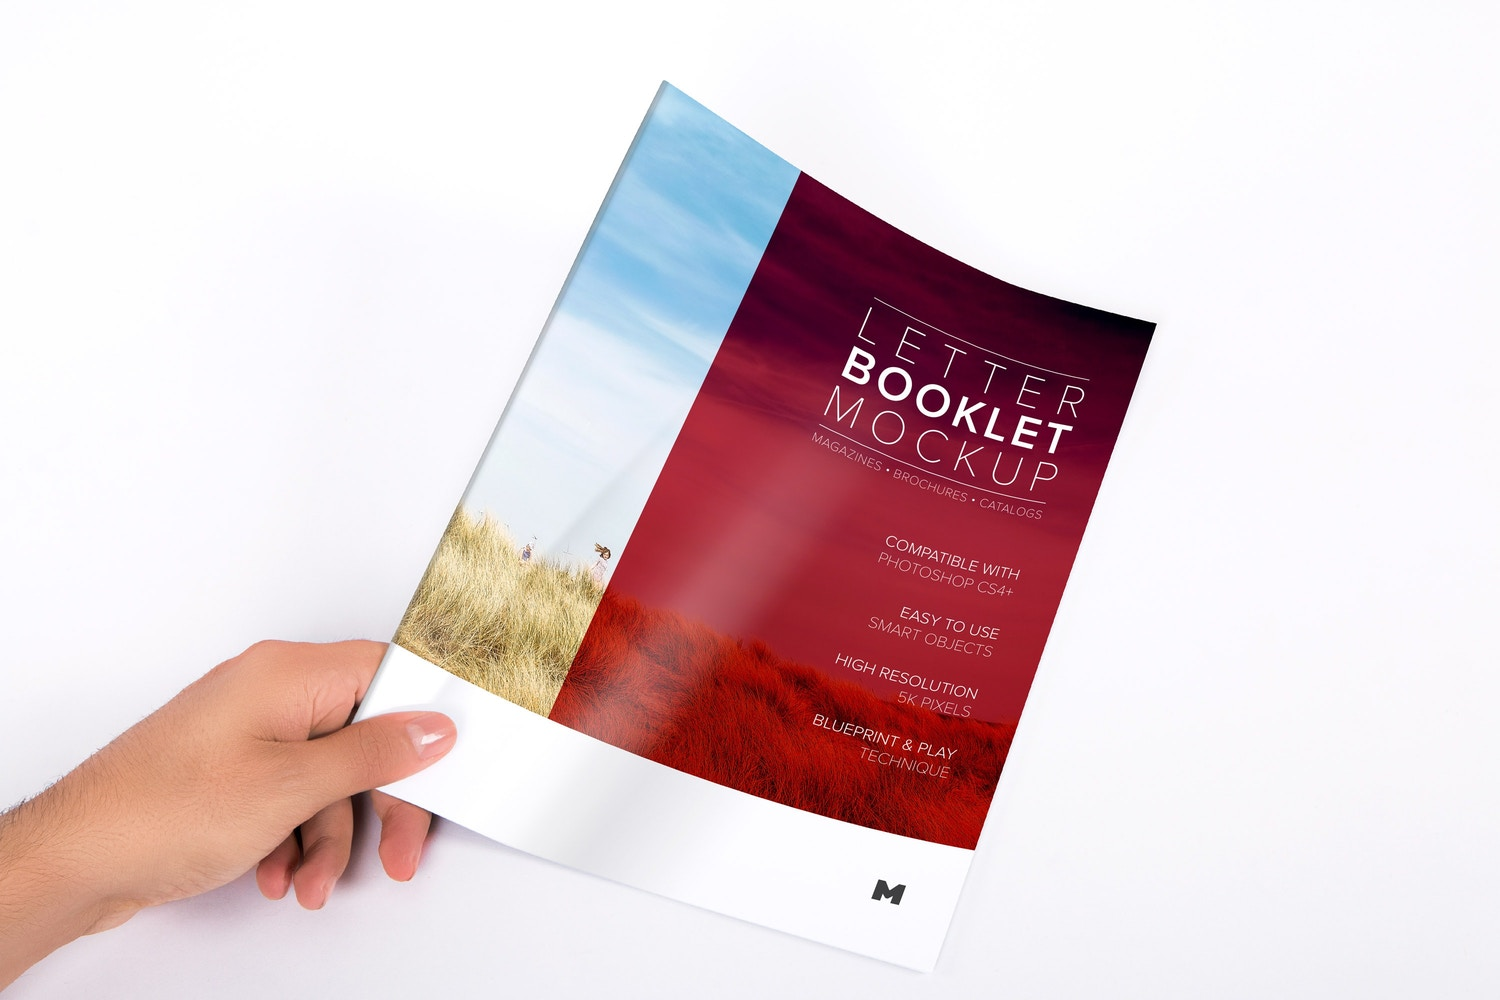 Letter Booklet Cover Mockup 01 by Original Mockups on Original Mockups